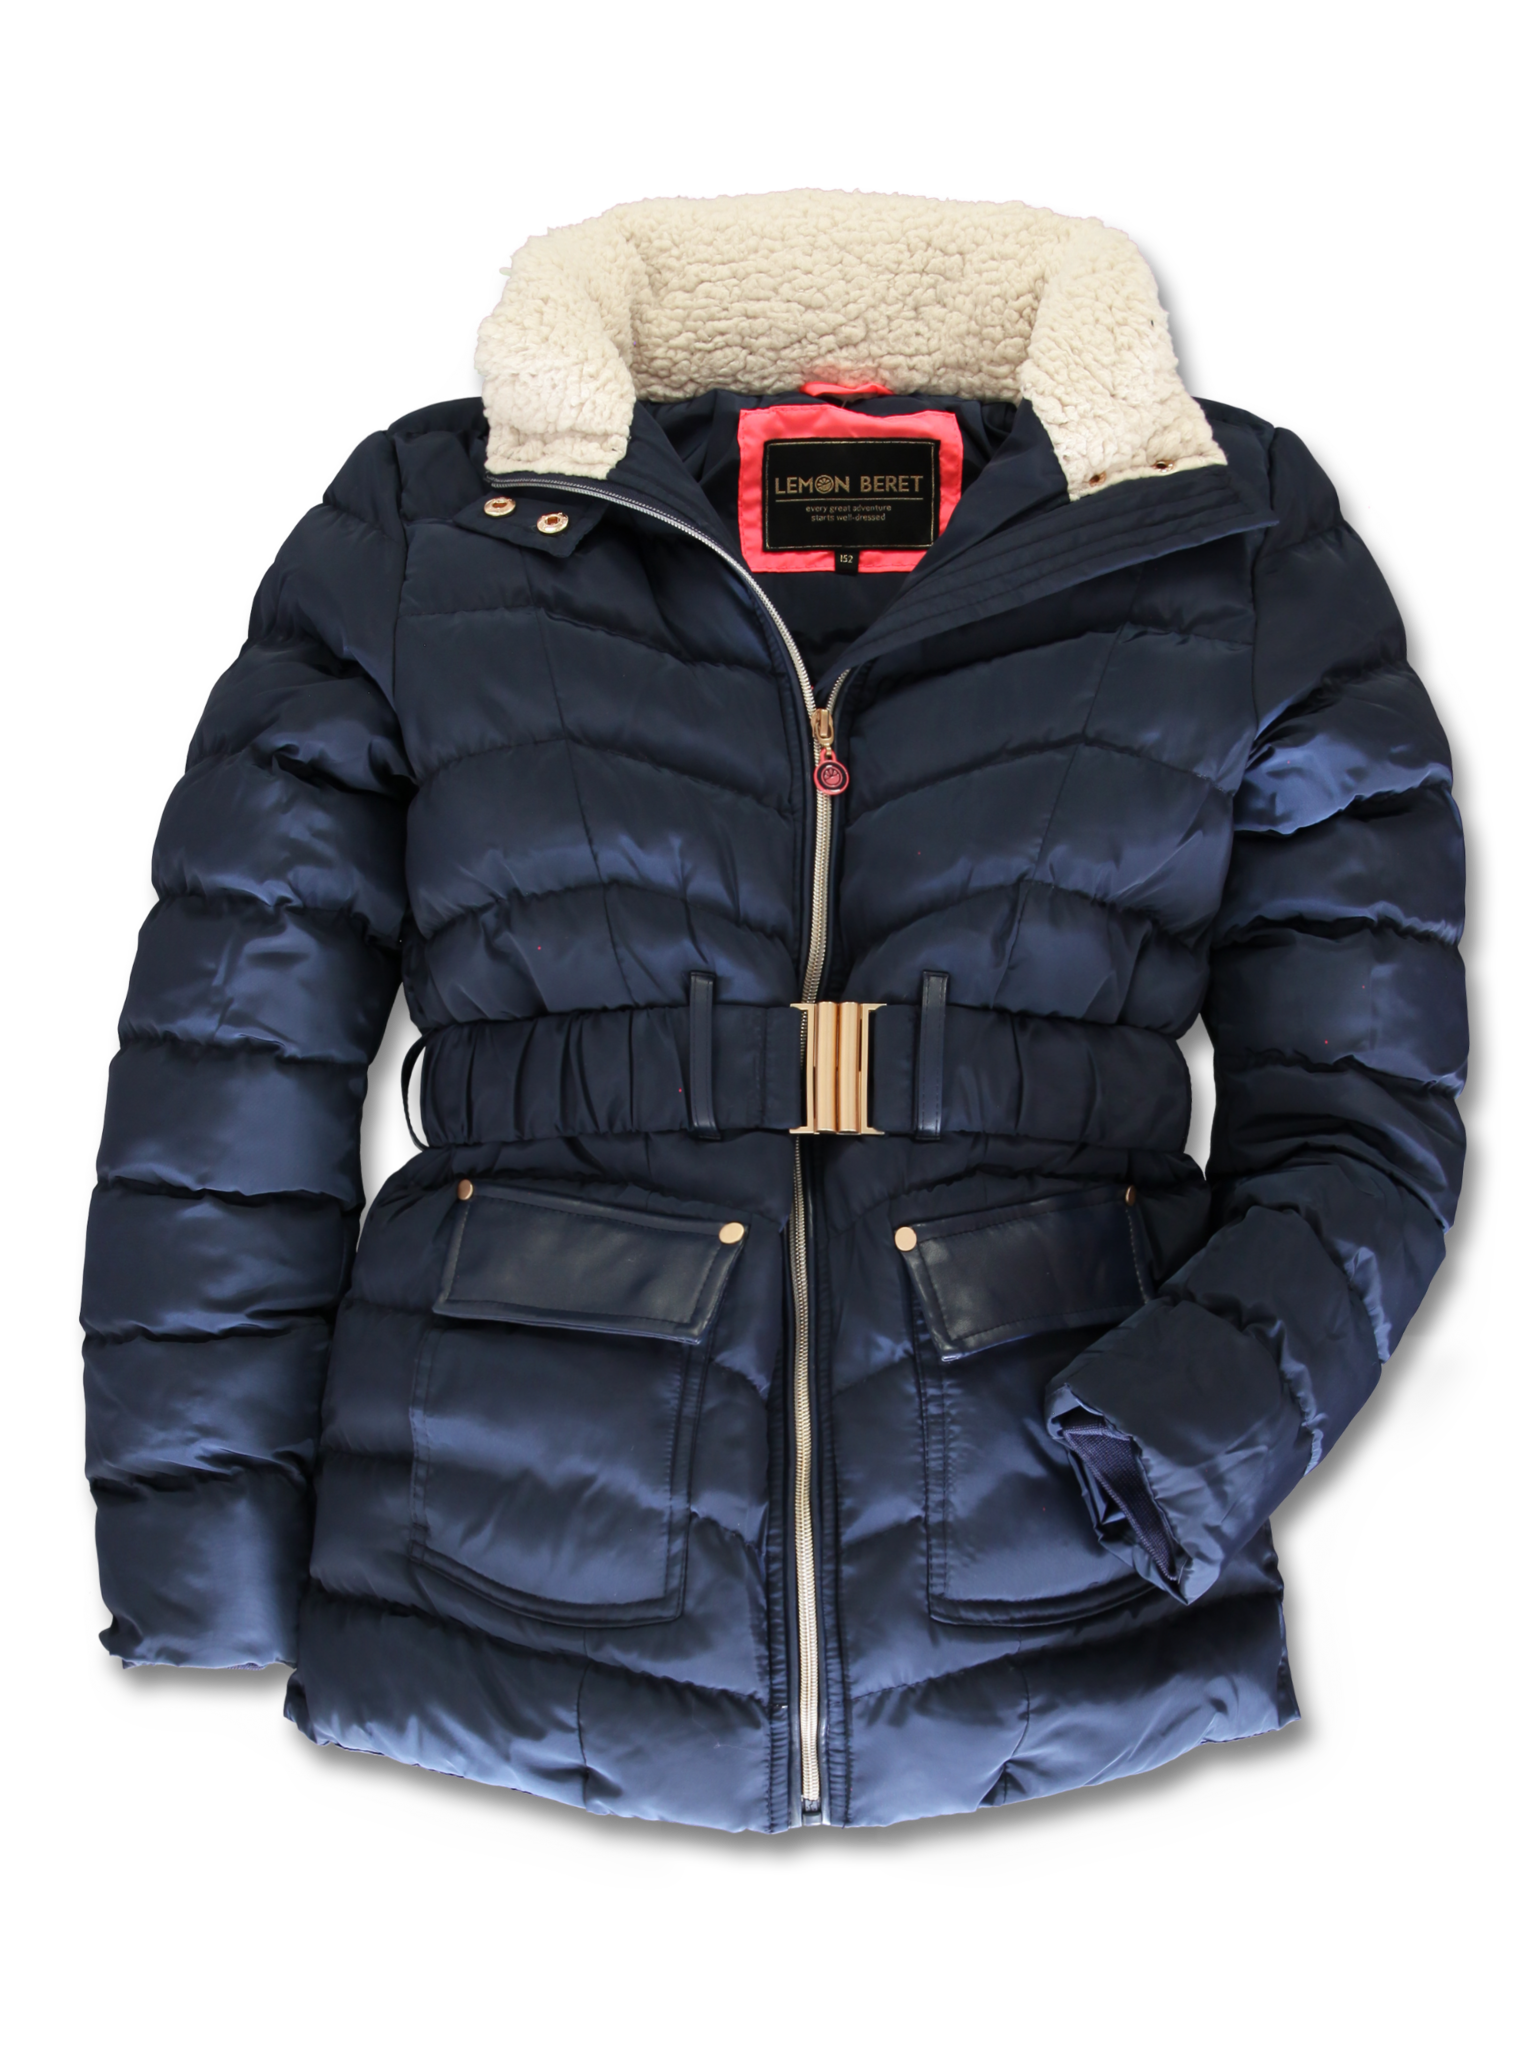 All Brands | Winterproducts Teen Girls | Jacket | 10 pcs/box